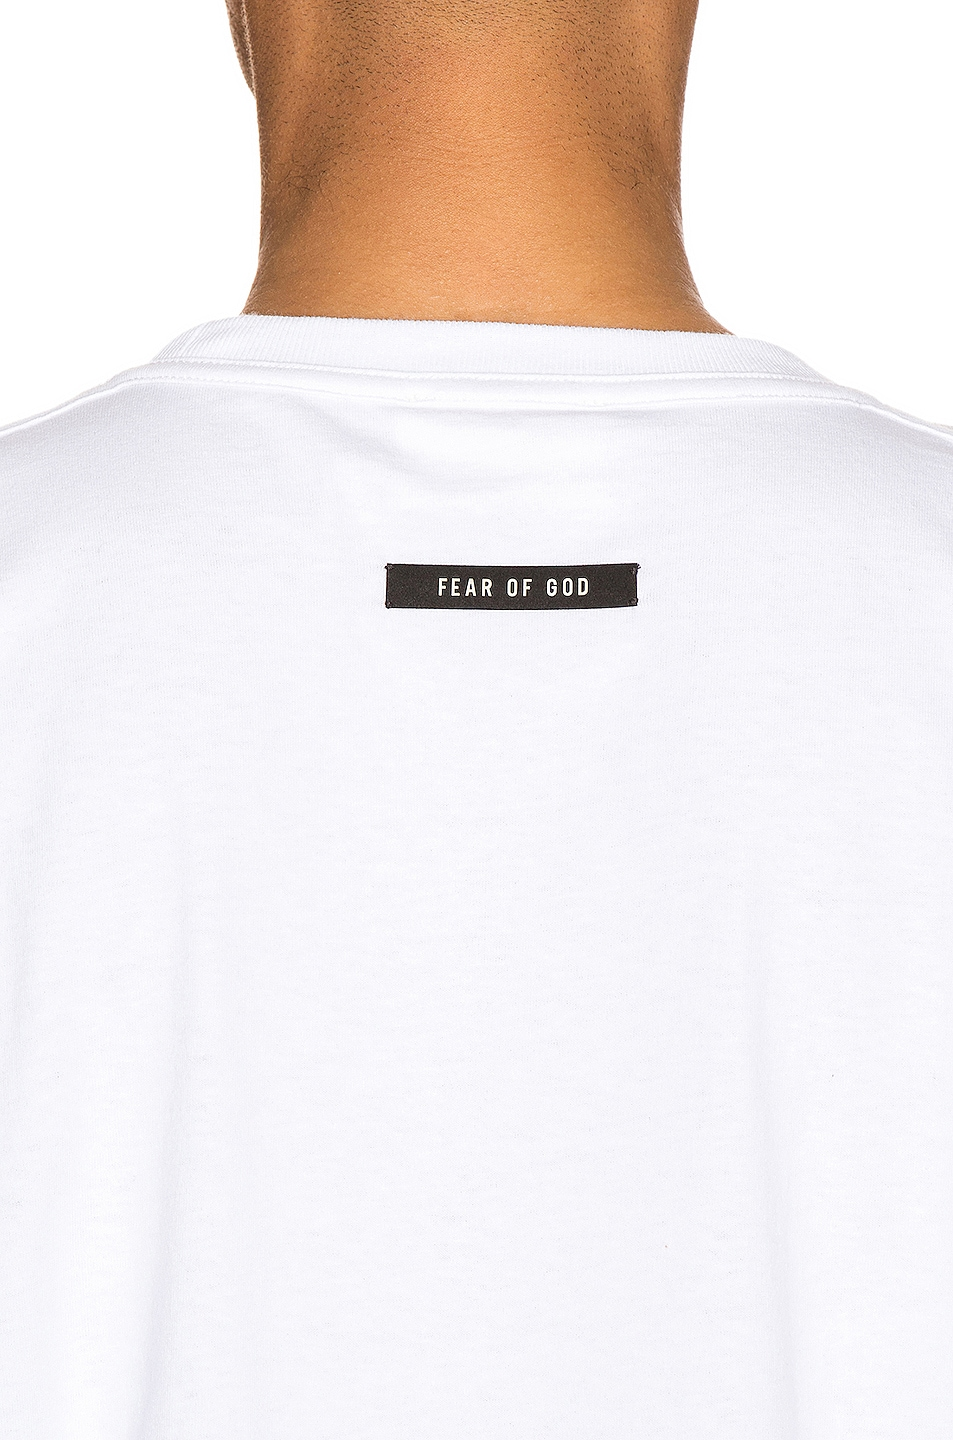 Image 5 of Fear of God Short Sleeve FG 3M Tee in White